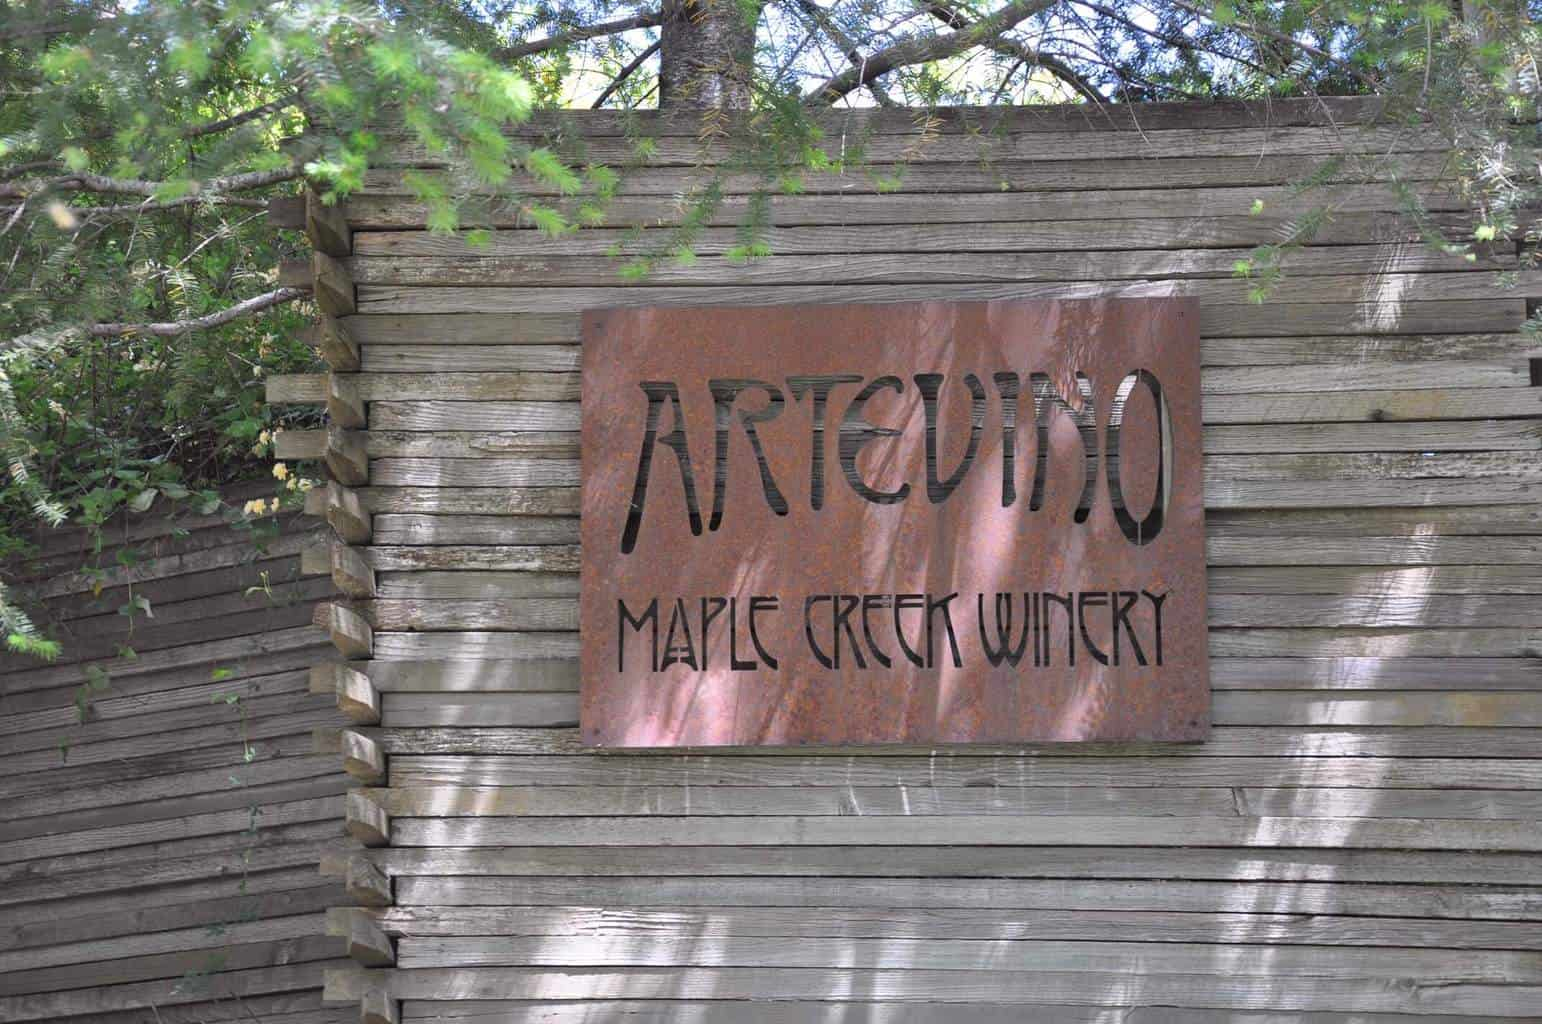 Artevino – Maple Creek Winery